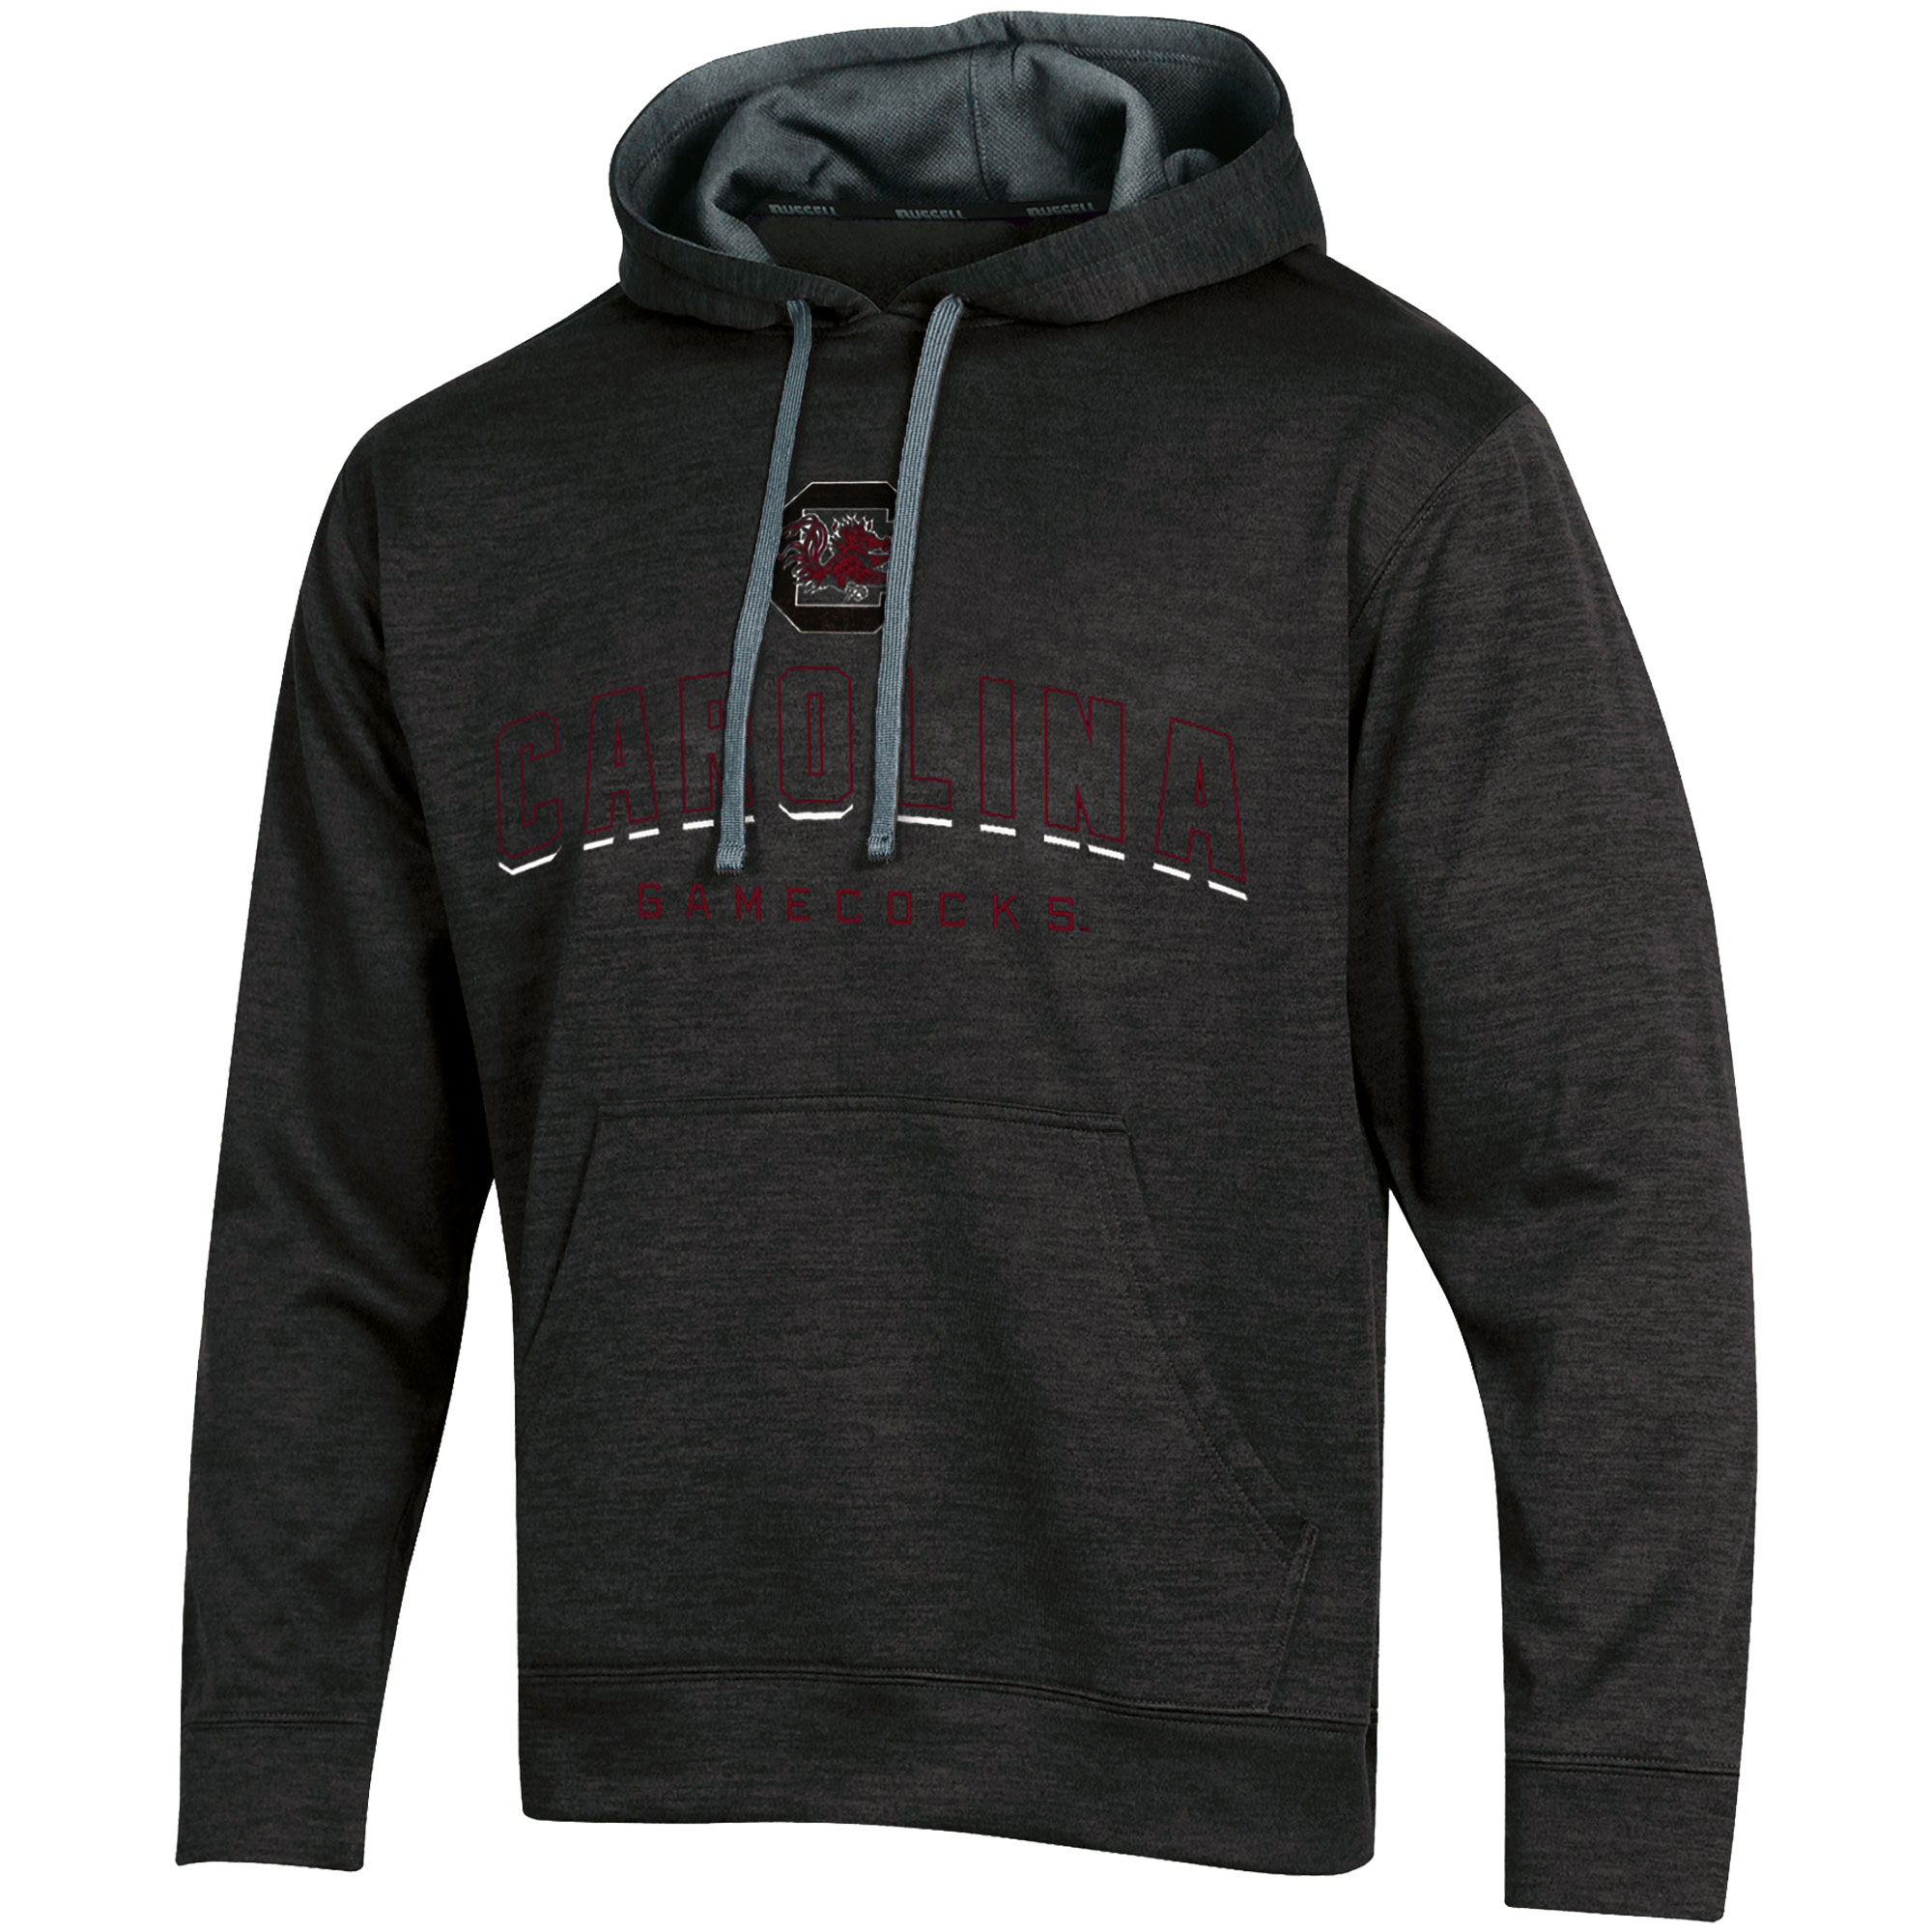 Men's Russell Black South Carolina Gamecocks Synthetic Pullover Hoodie